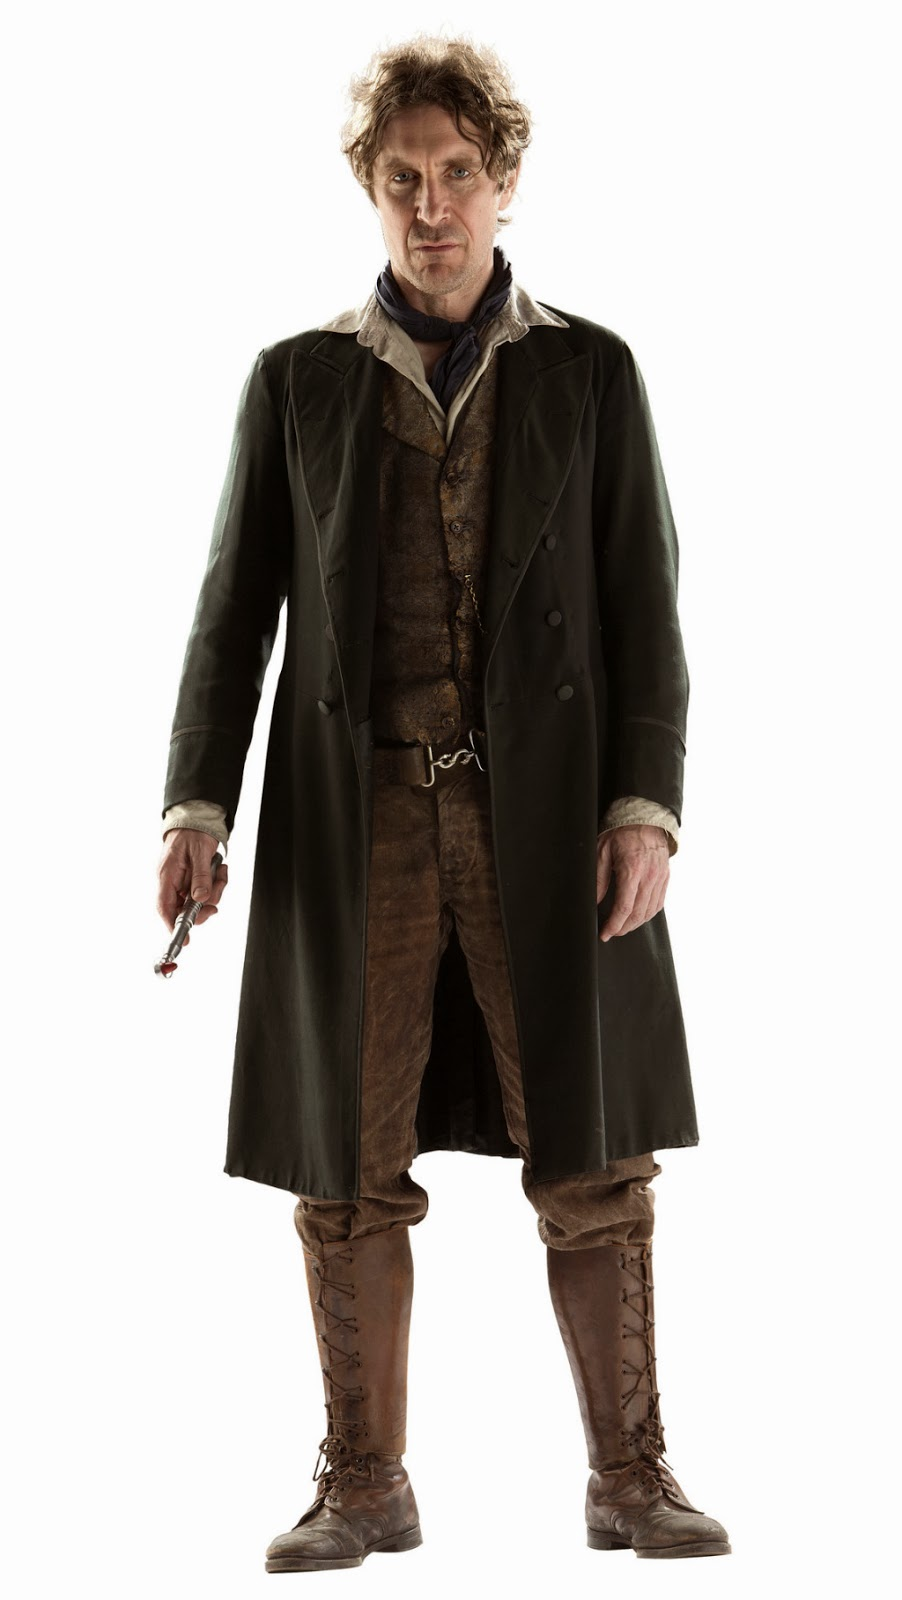 Paul McGann as the Eighth Doctor in his Battle Dress